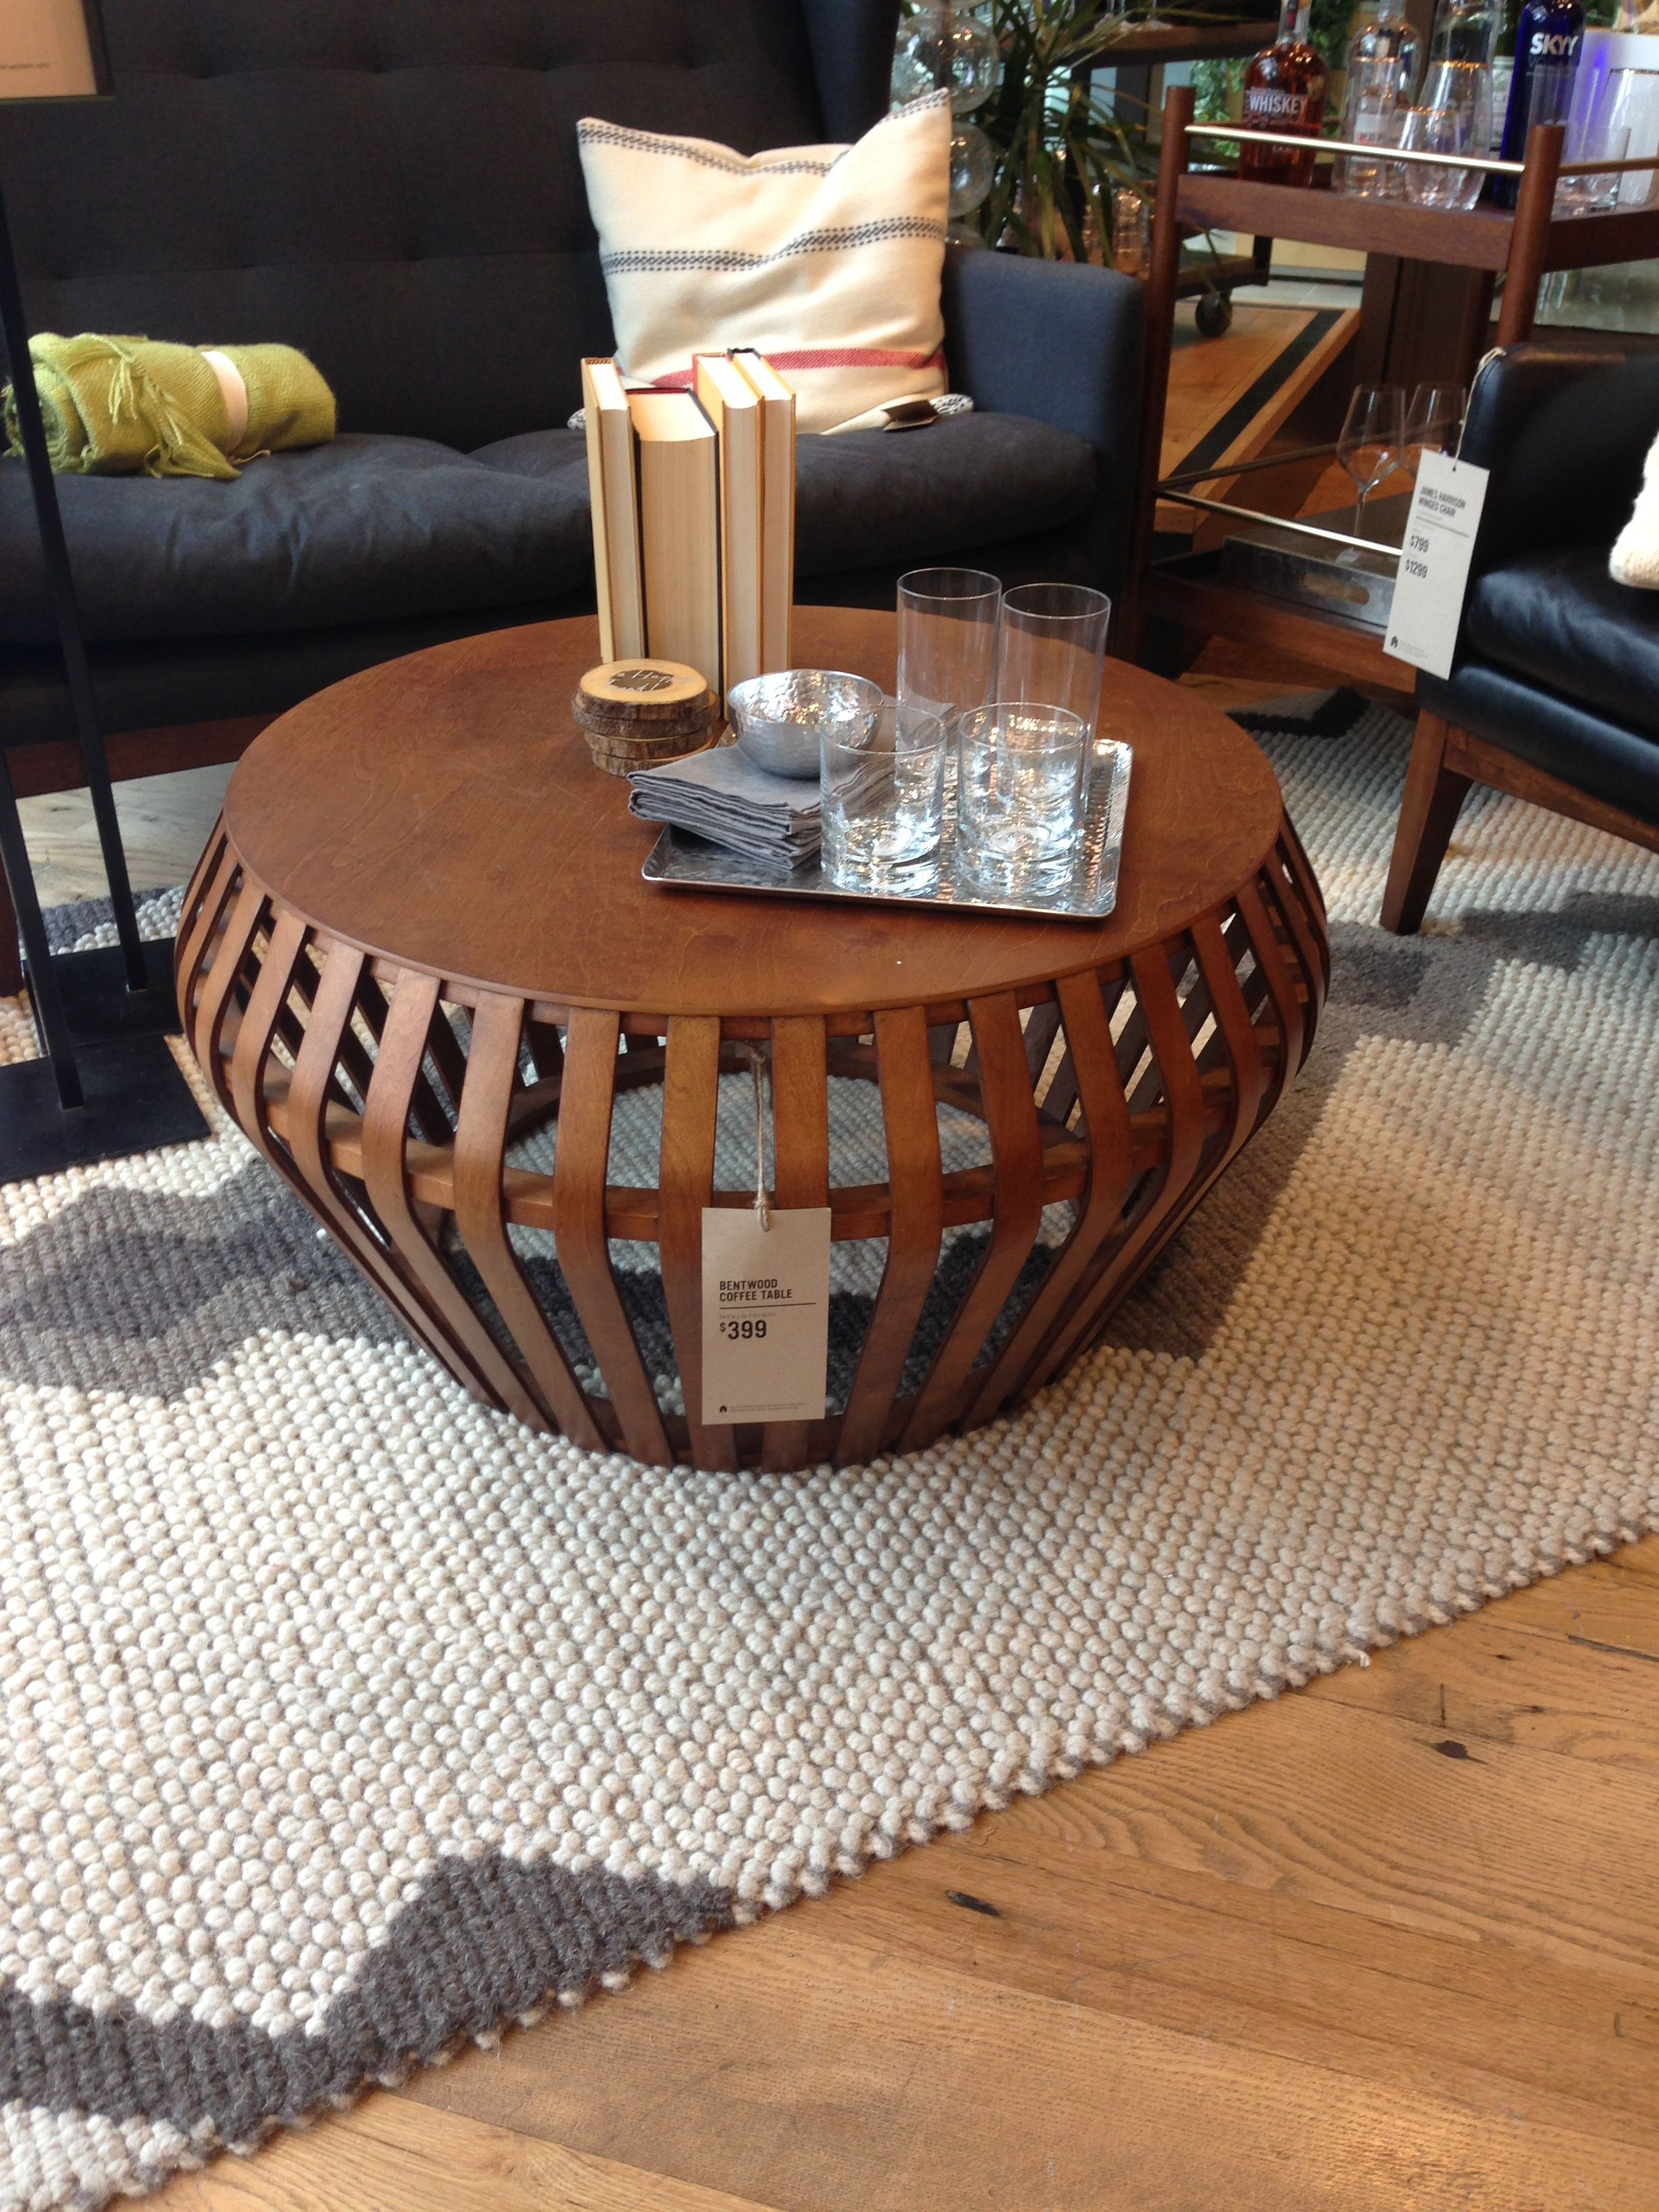 West Elm Bentwood Coffee Table Newmark Pinterest Apartment - West elm bentwood coffee table